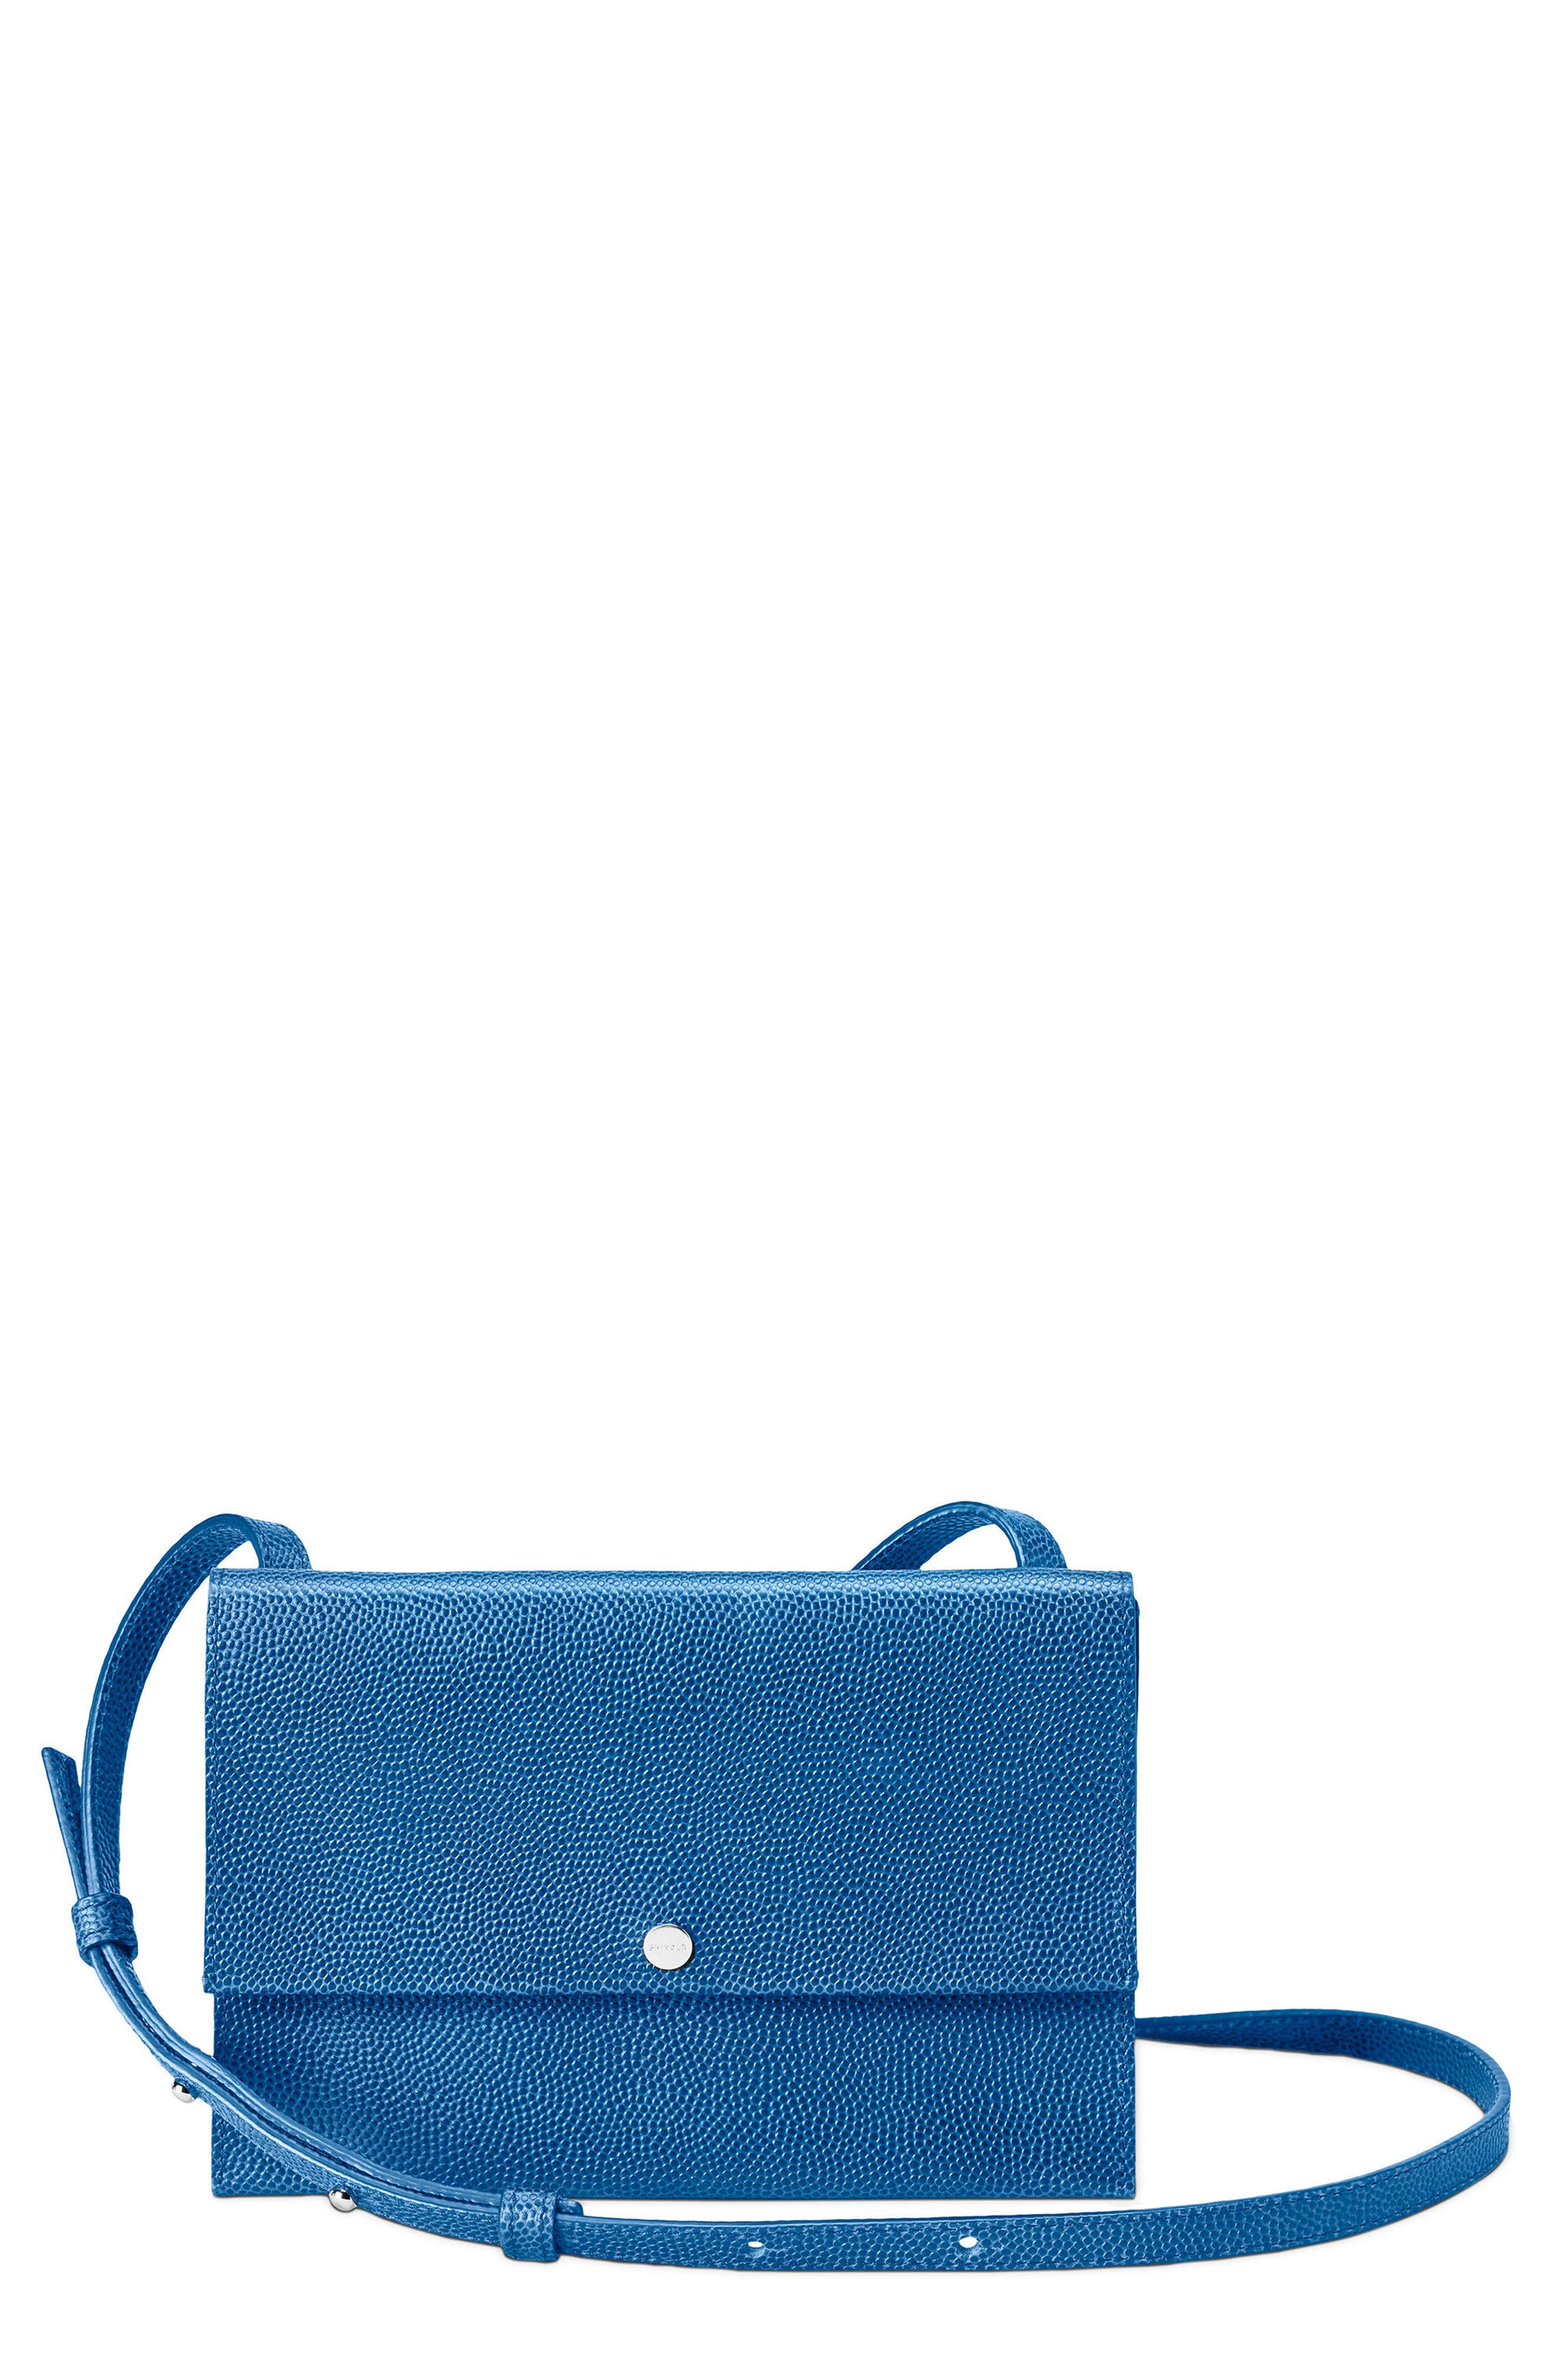 Main Image - Shinola Leather Crossbody Bag